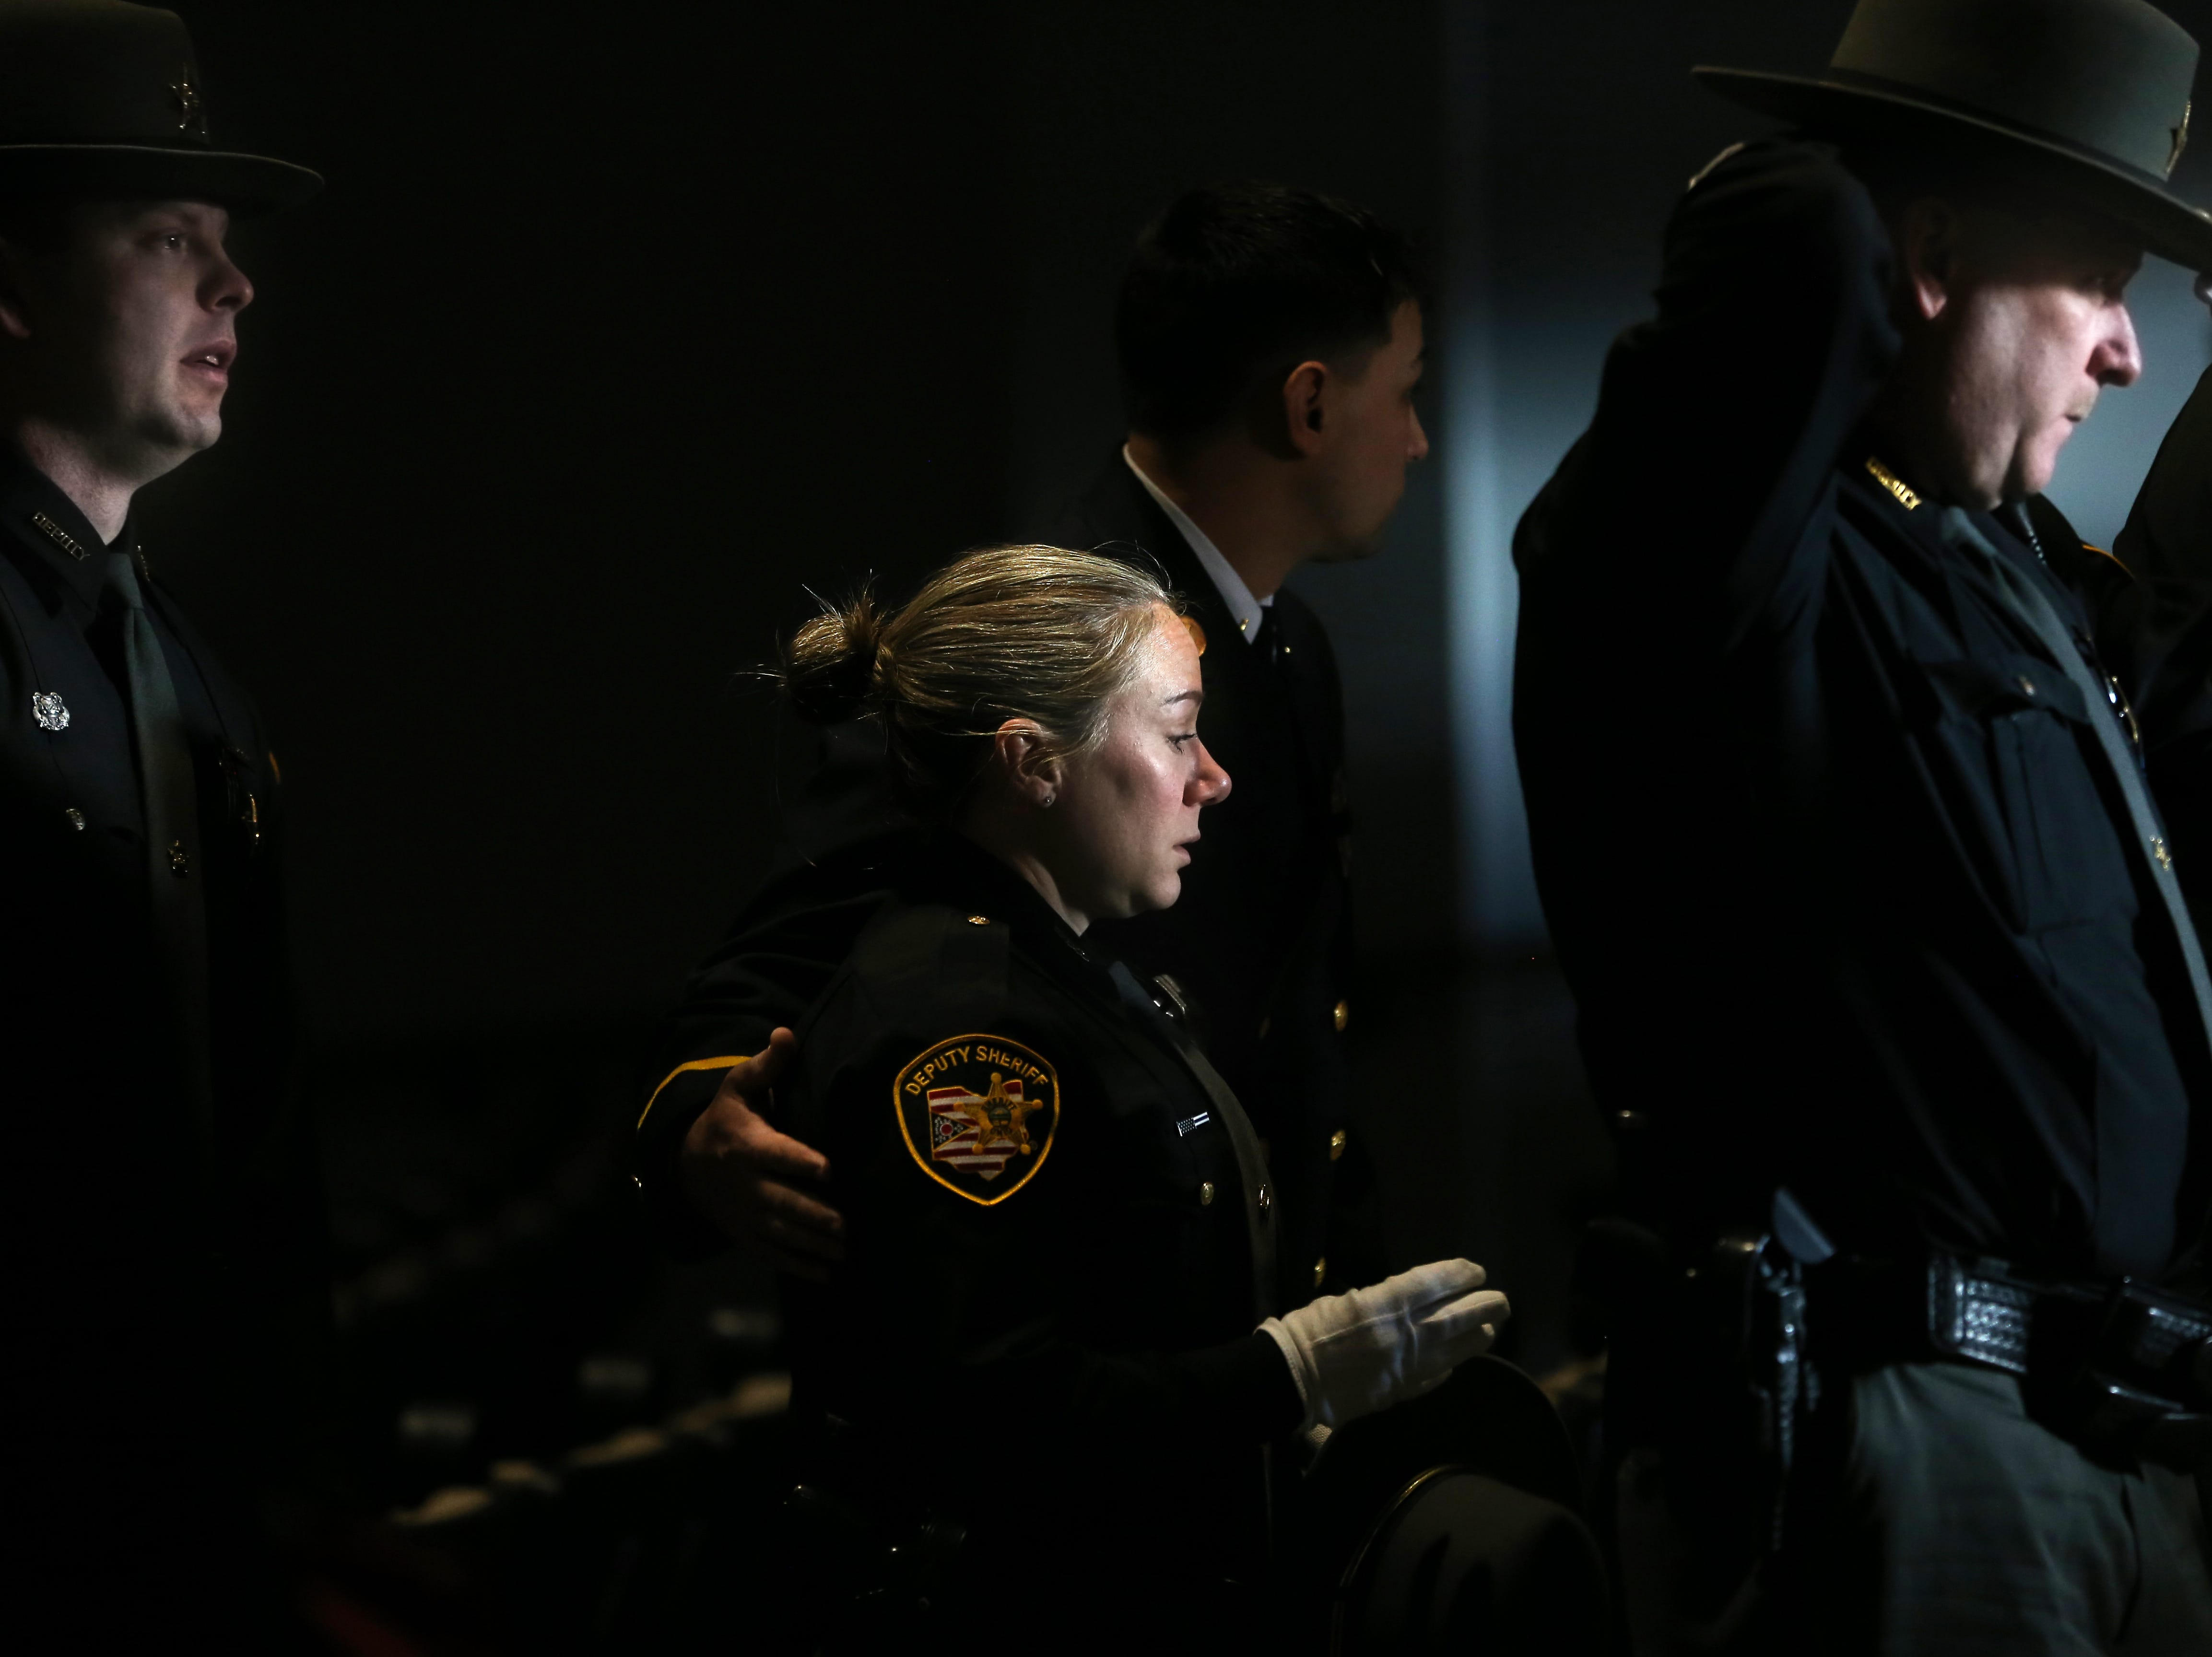 Mourners pay their respects during funeral services for Clermont County Sheriff's Detective William Lee Brewer Jr., Friday, Feb. 8, 2019, at Mount Carmel Christian Church in Union Township, Ohio. Brewer, a 20-year veteran of the Clermont County Sheriff's Office, died in the line of duty. He was shot Feb. 2 during a standoff. Brewer, 42, of Pierce Township, is survived by his wife, Jamie, and a 5-year-old son, Braxton. (Kareem Elgazzar/The Cincinnati Enquirer)